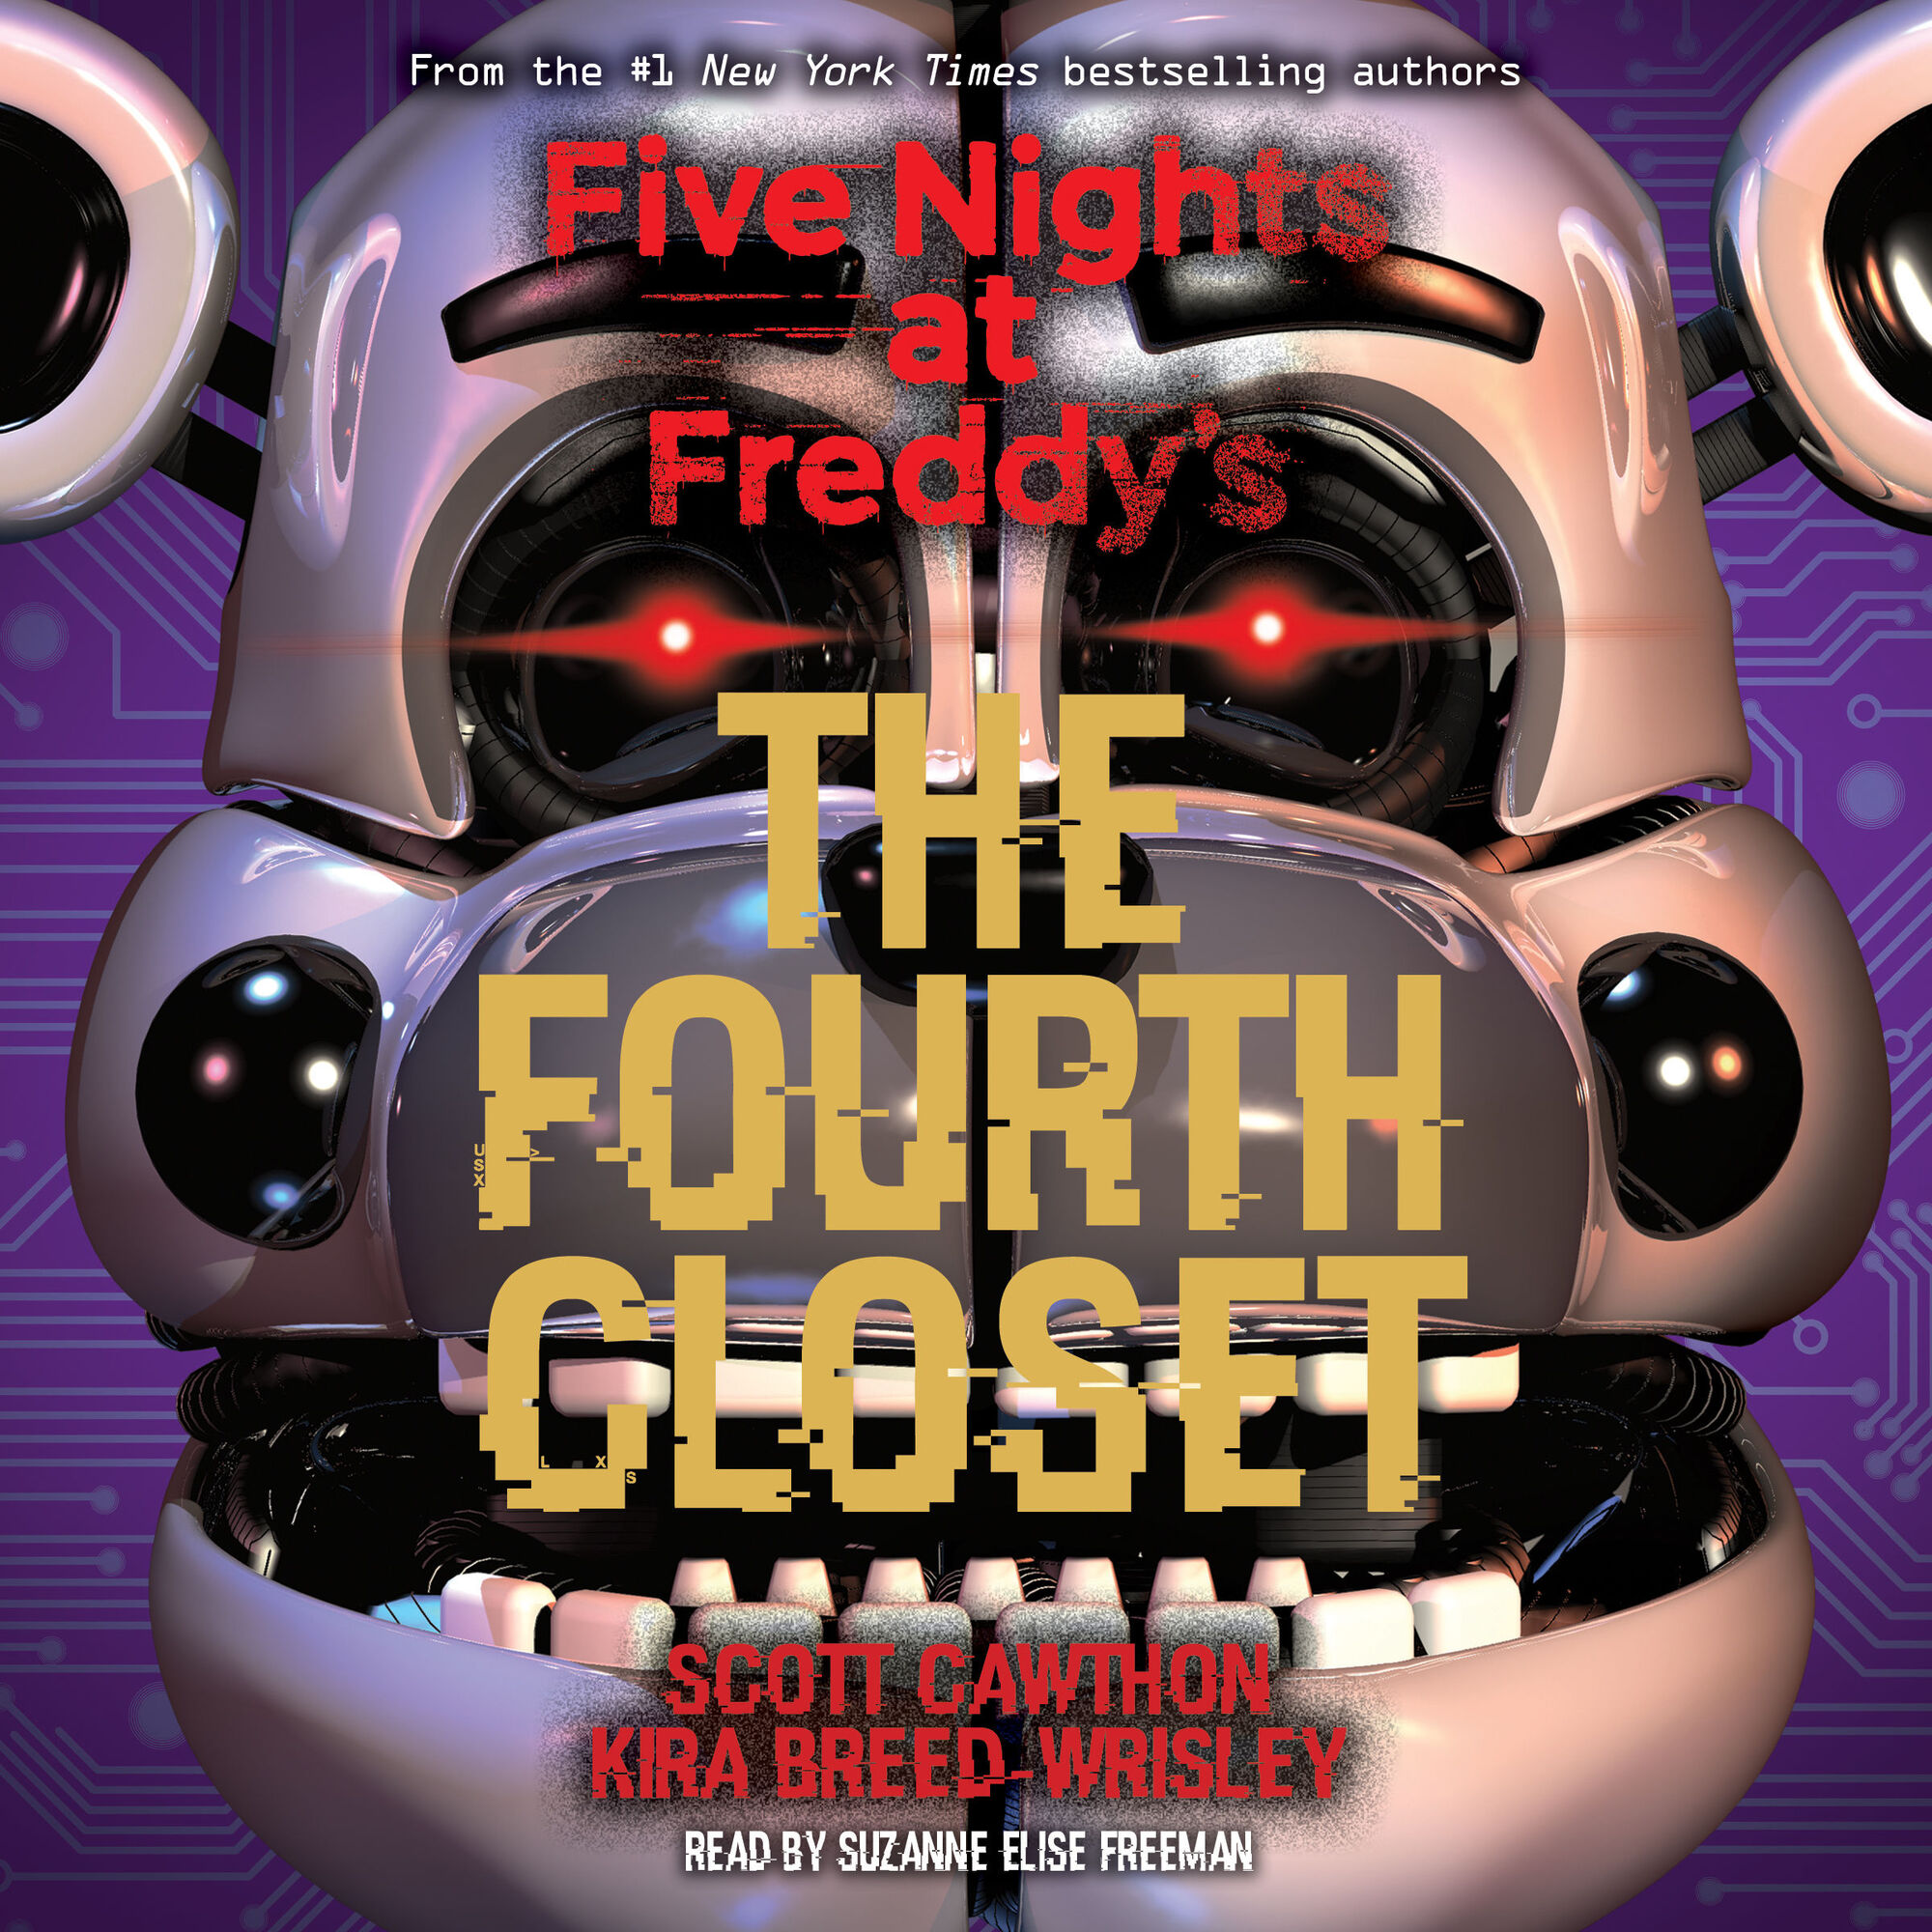 Five Nights At Freddys The Fourth Closet Fnaf The Novel Wiki